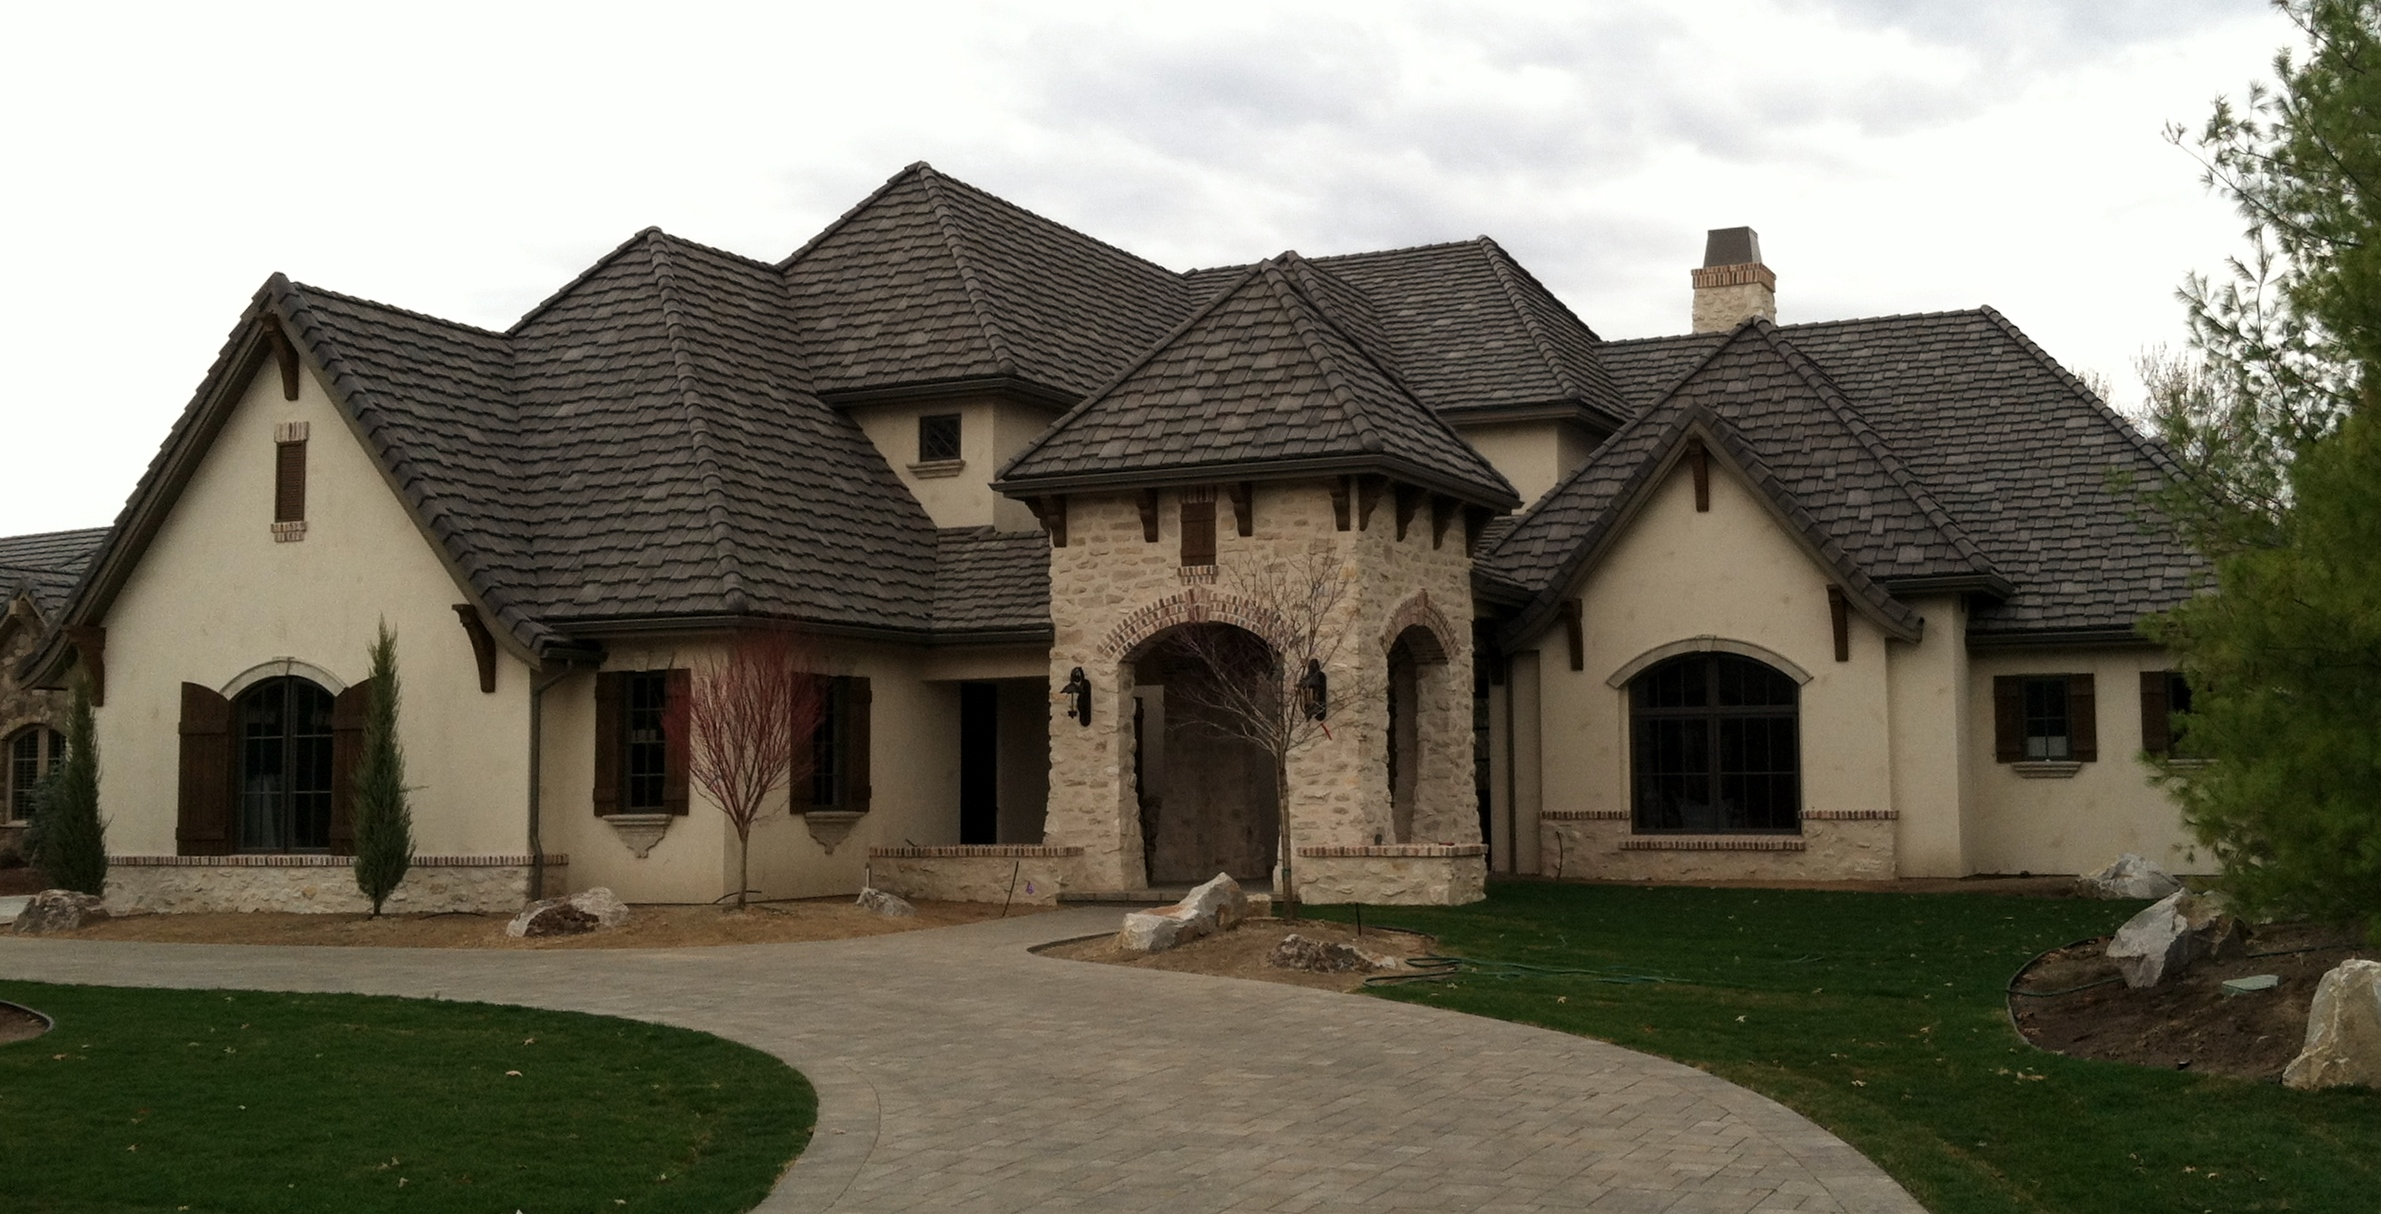 Robert pederesen signature homes eagle idaho for Old world house plans courtyard